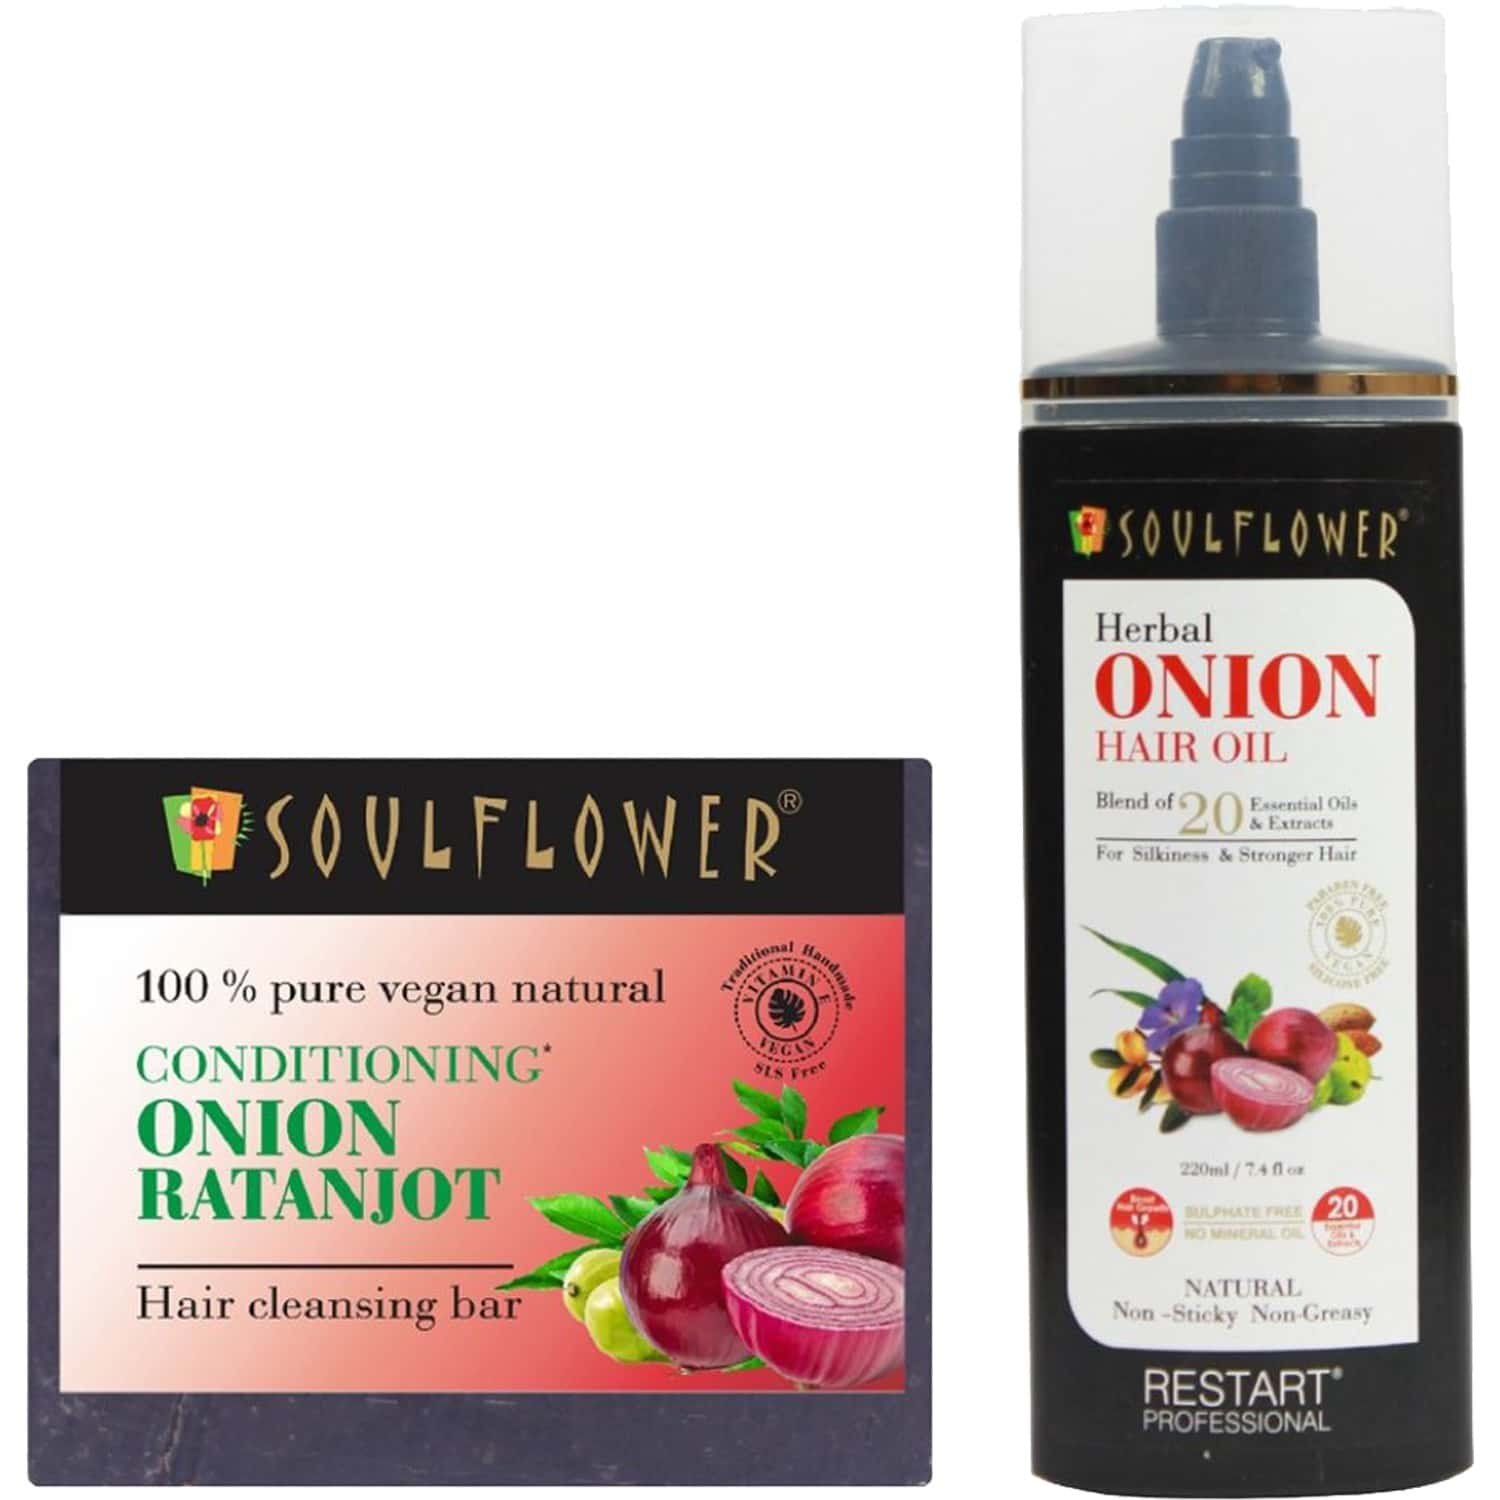 Soulflower Onion Hair Oil ( 220ml )& Conditioning Onion Ratanjot Hair Cleansing Bar (150g)